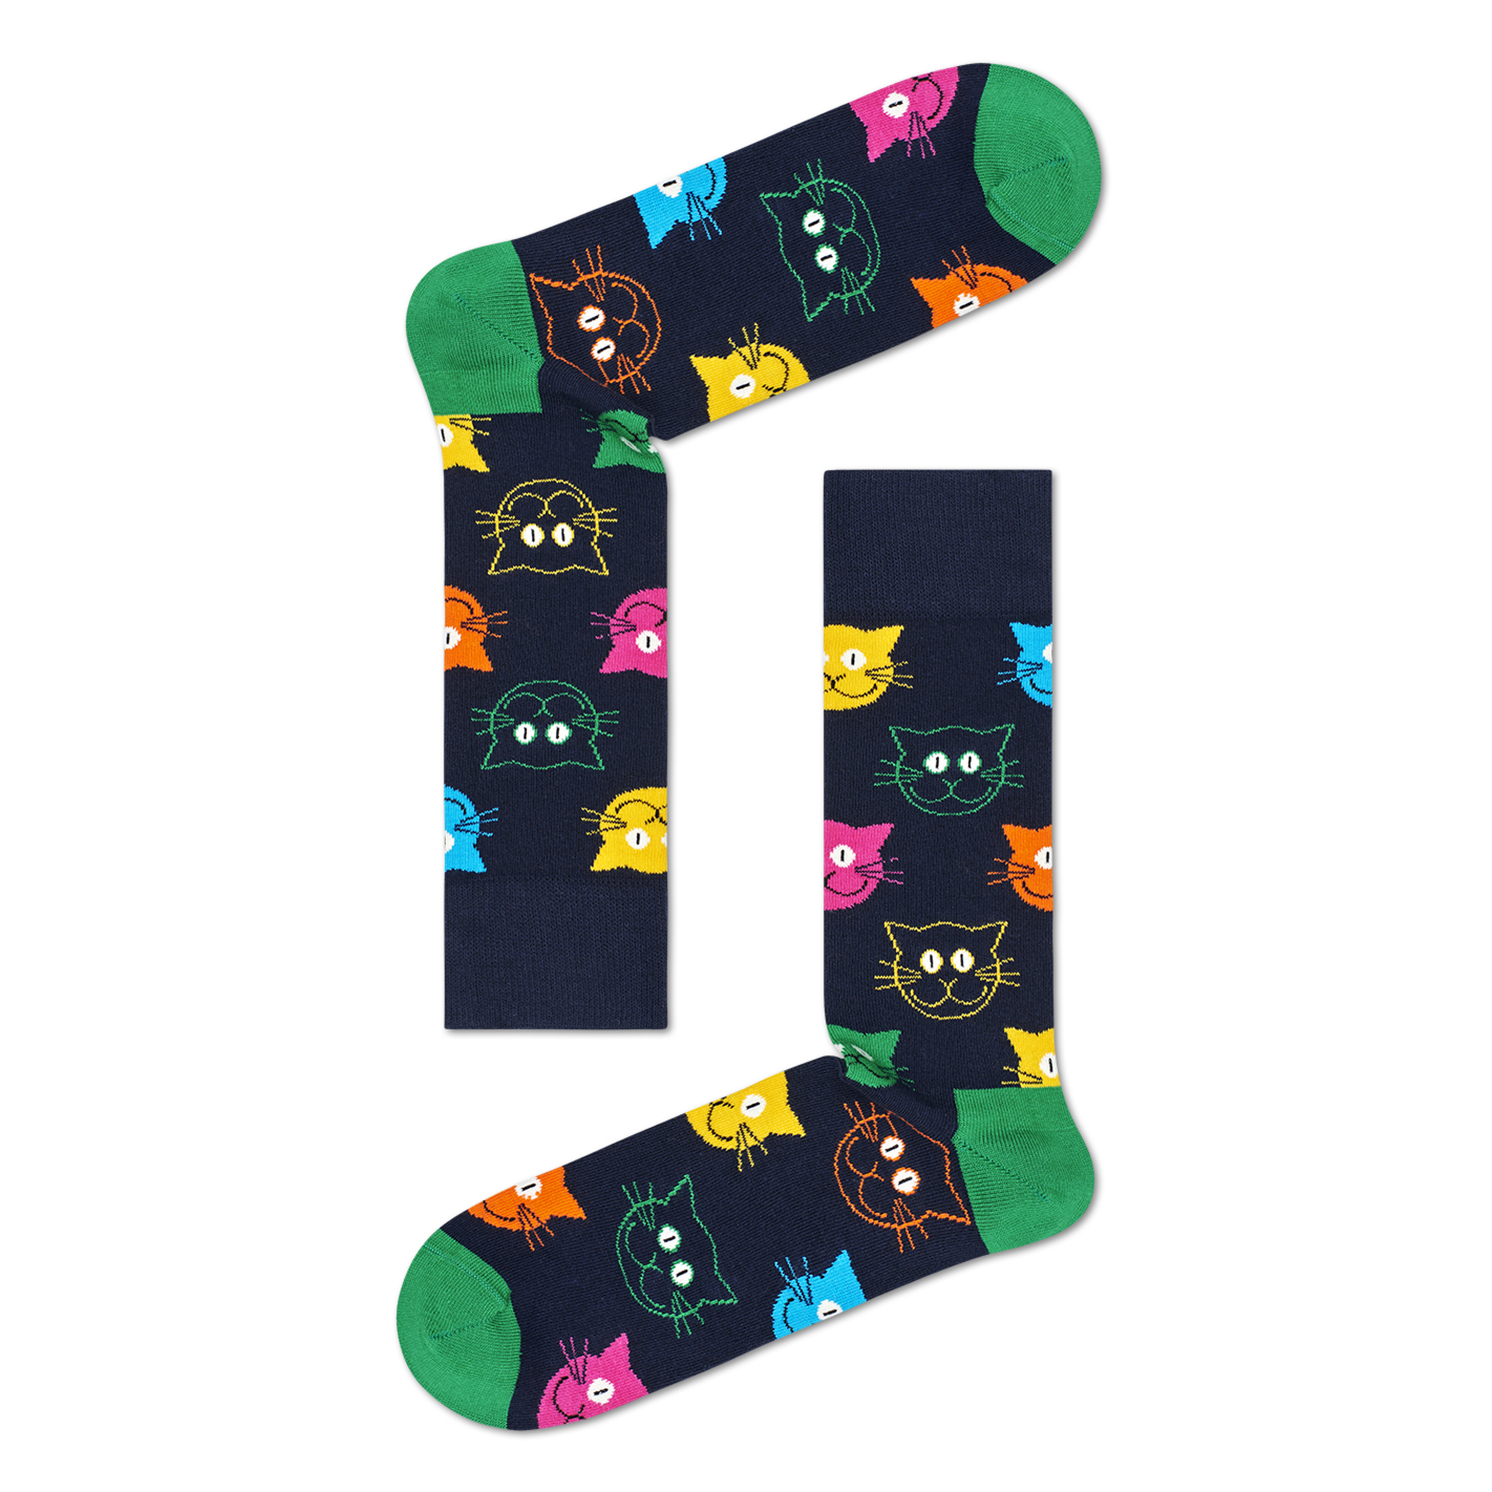 Happy Socks – Set of 3 Pairs of Mixed Cat Socks in Presentation Gift Box